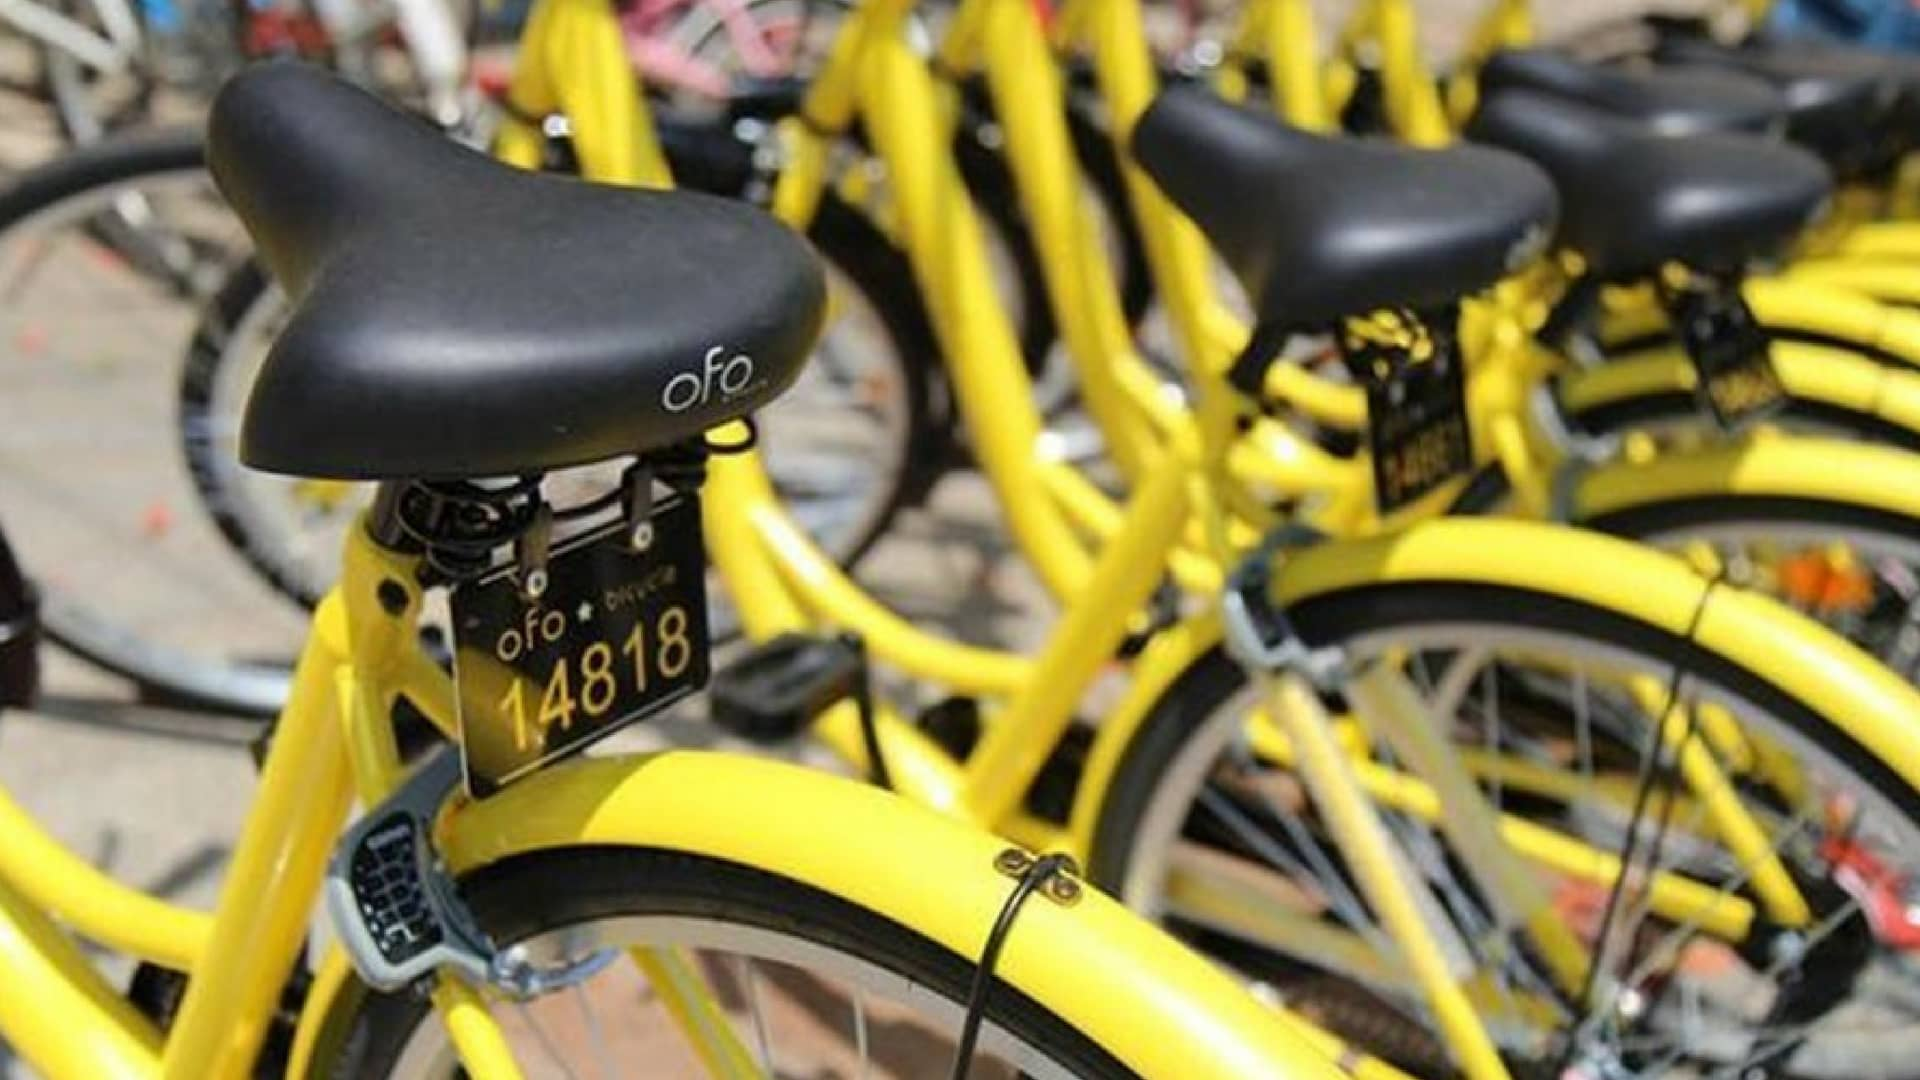 ofo-bike-sharing-stati-uniti